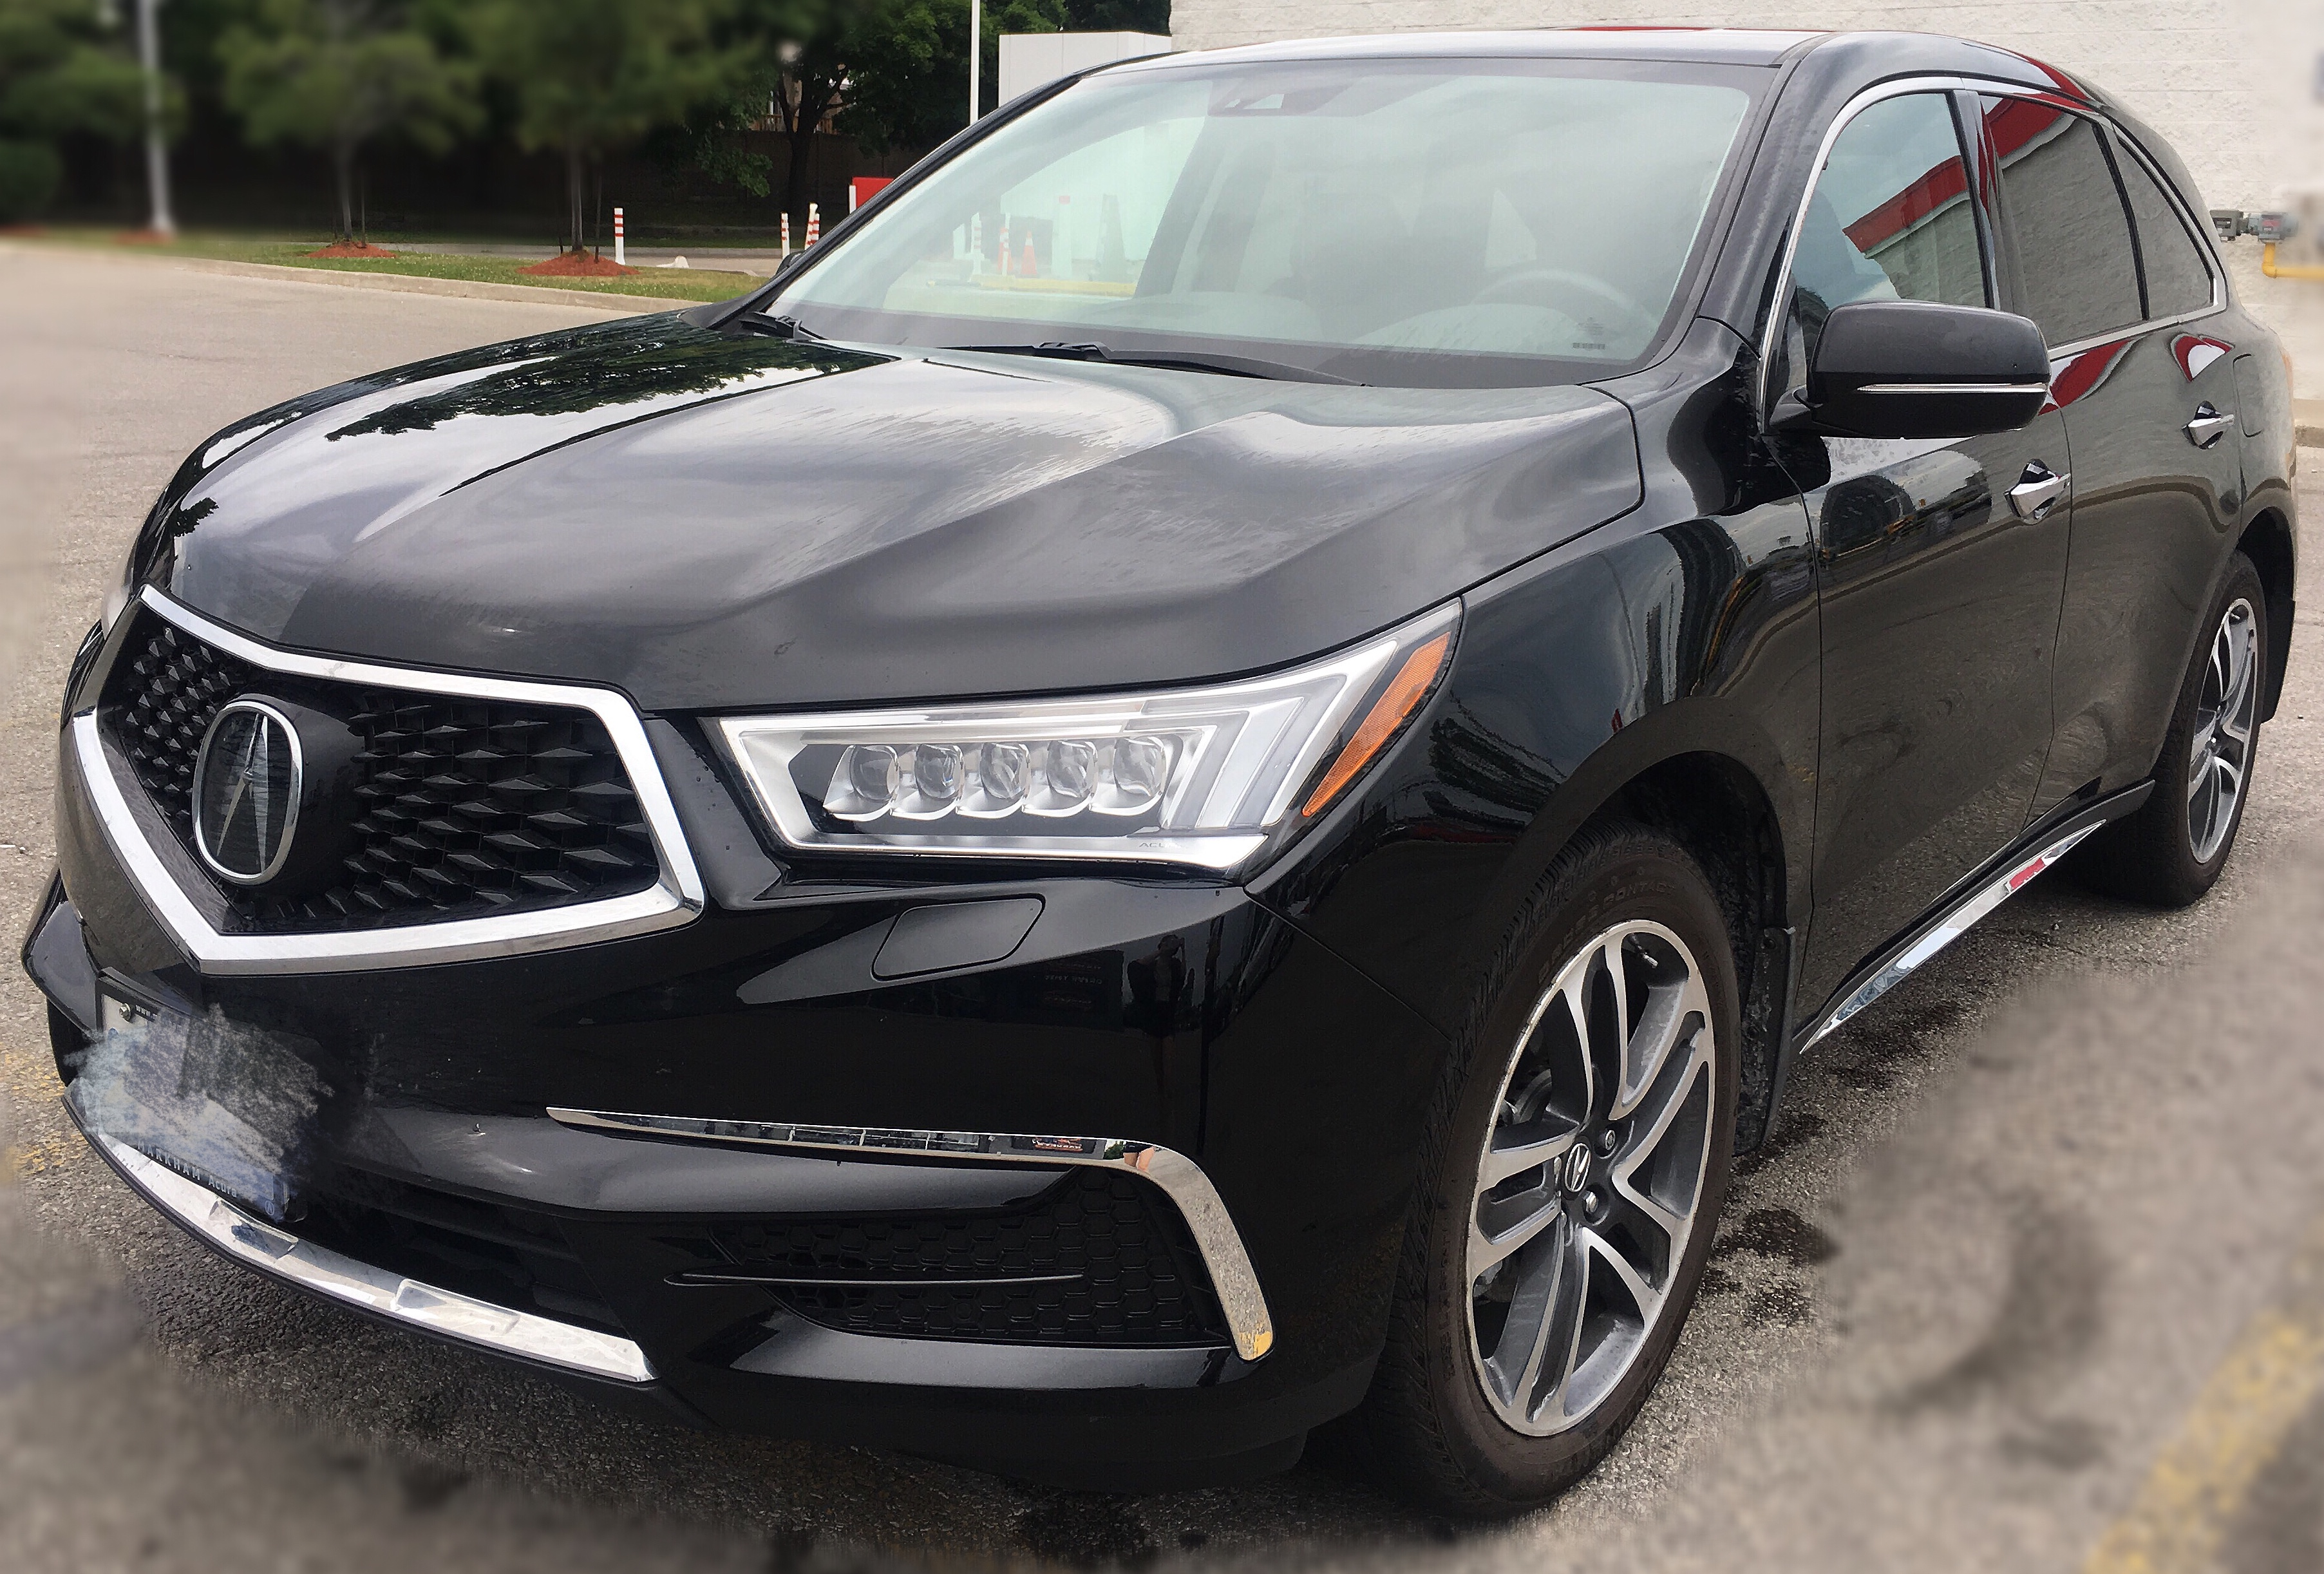 package vehicles ct htm awd new with acura lease advance schaller sale featured sh manchester mdx for in